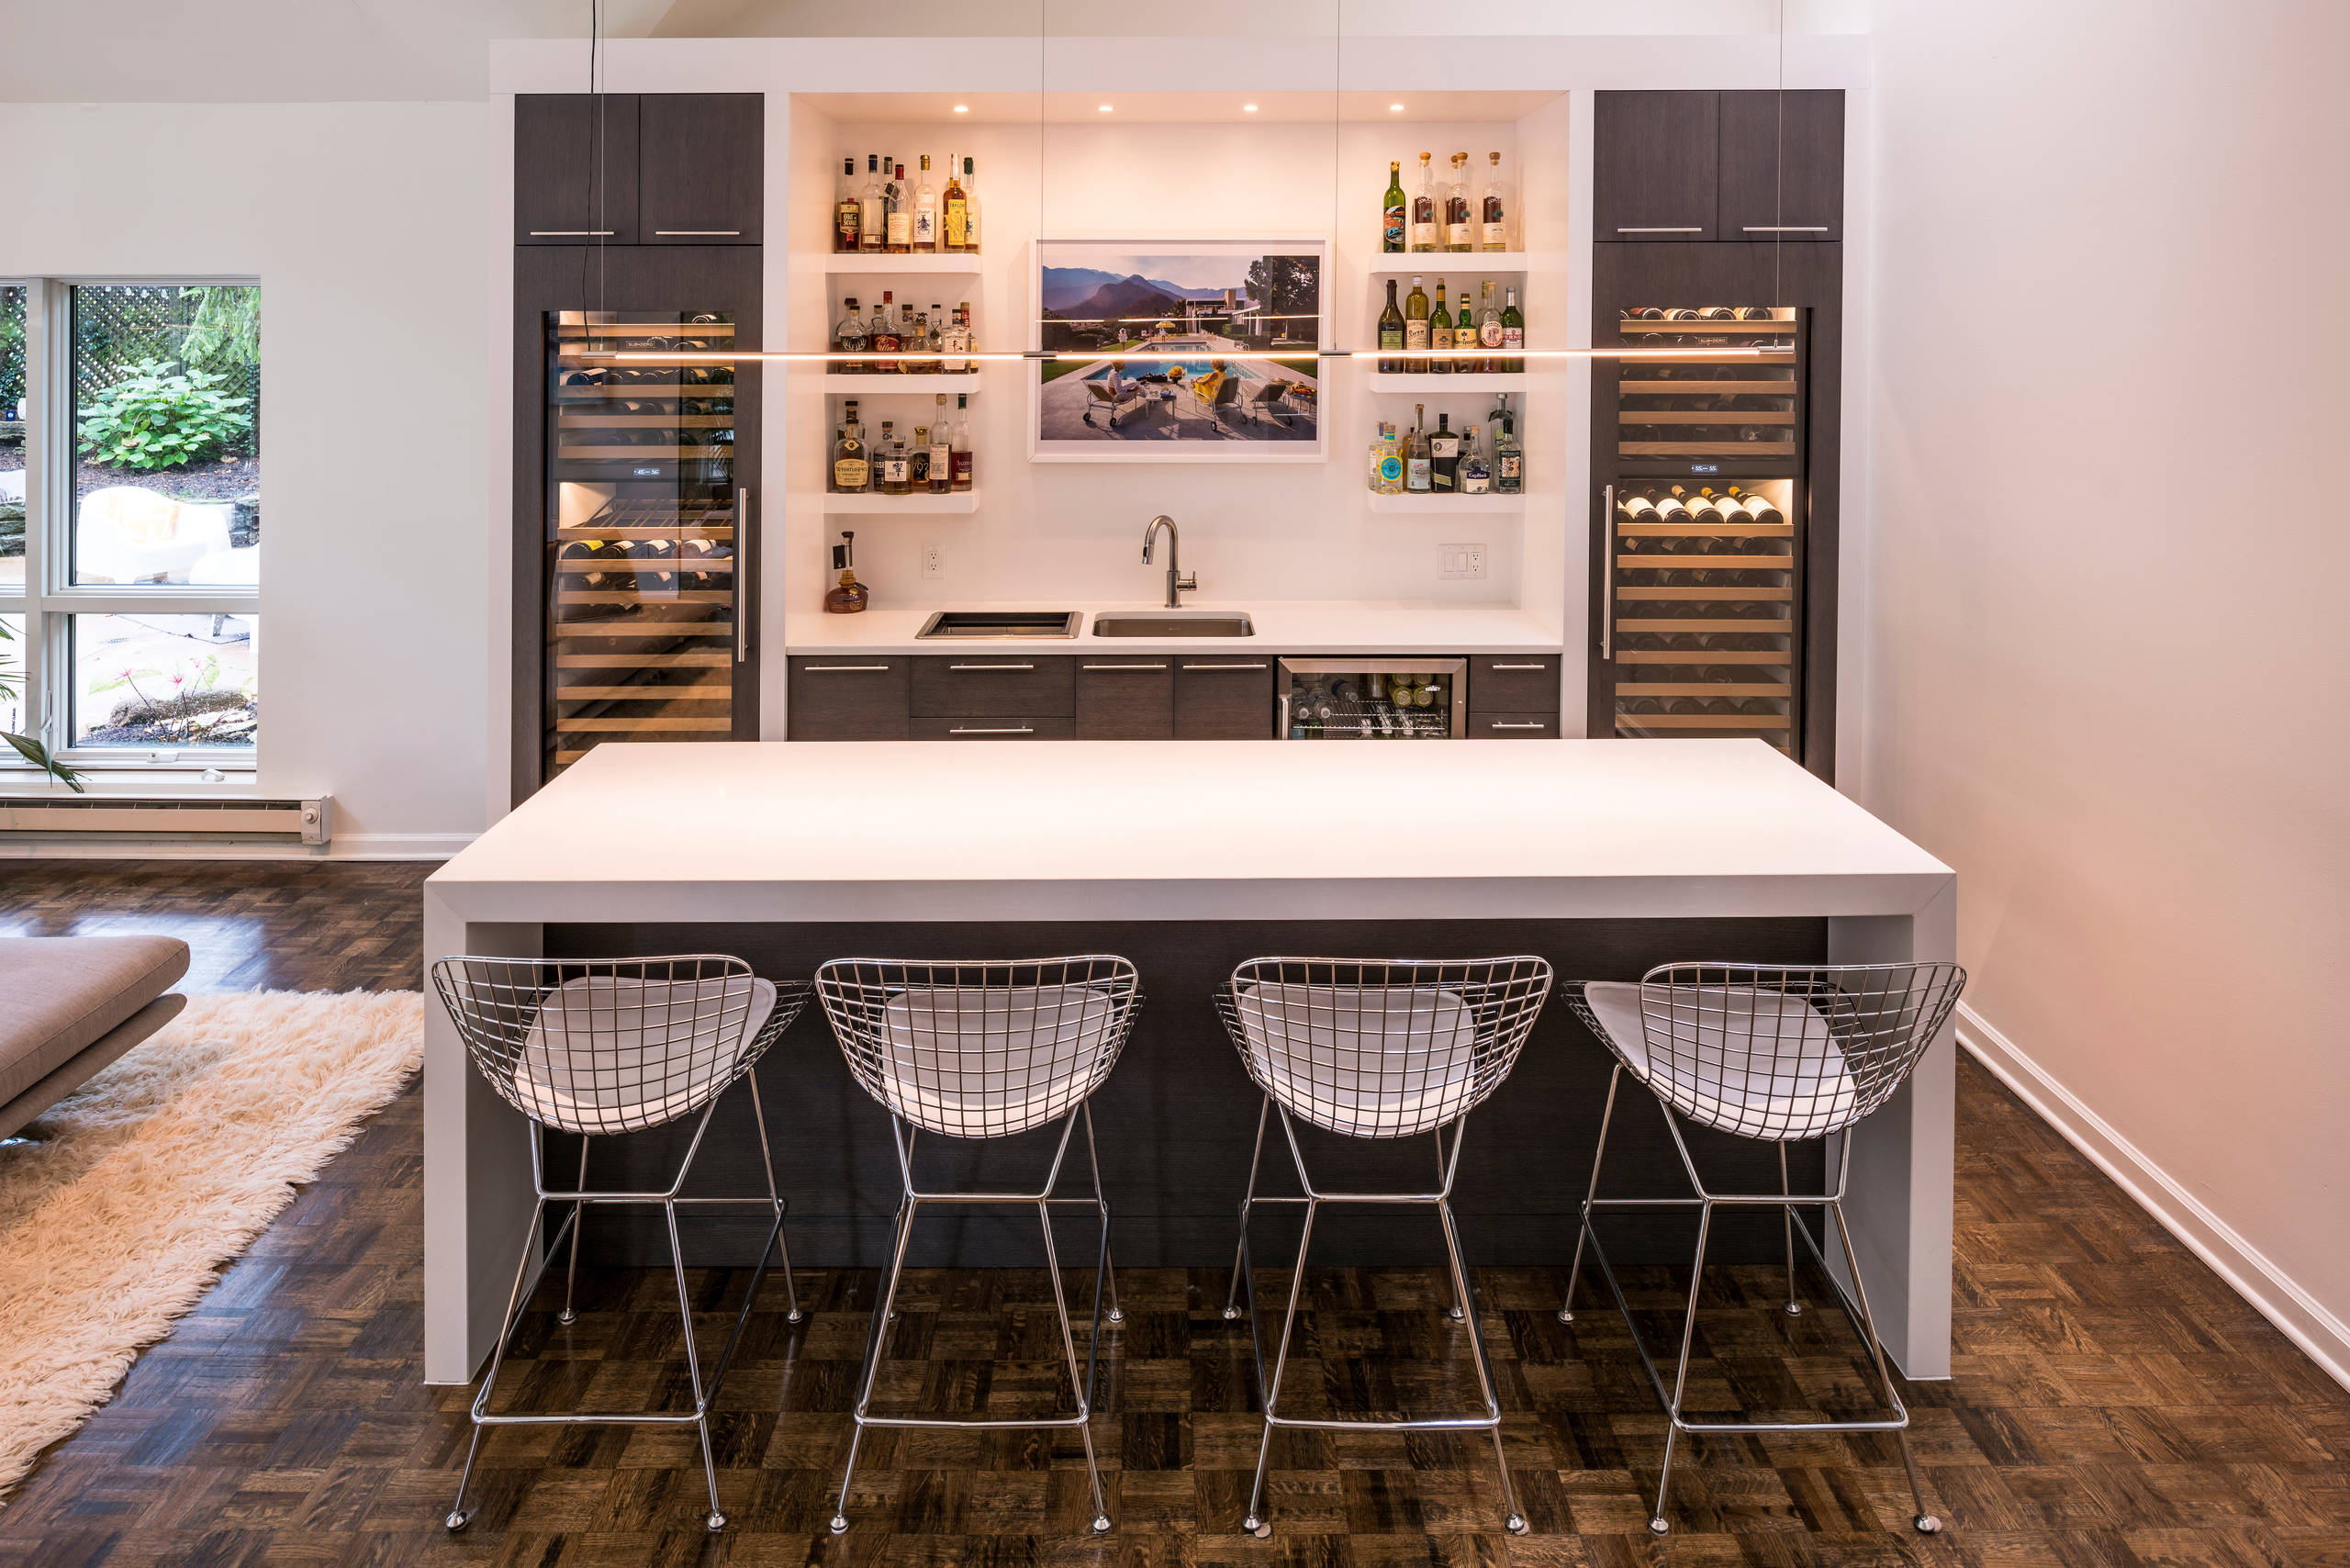 Sommelier's Choice by Don Justice Cabinet Makers